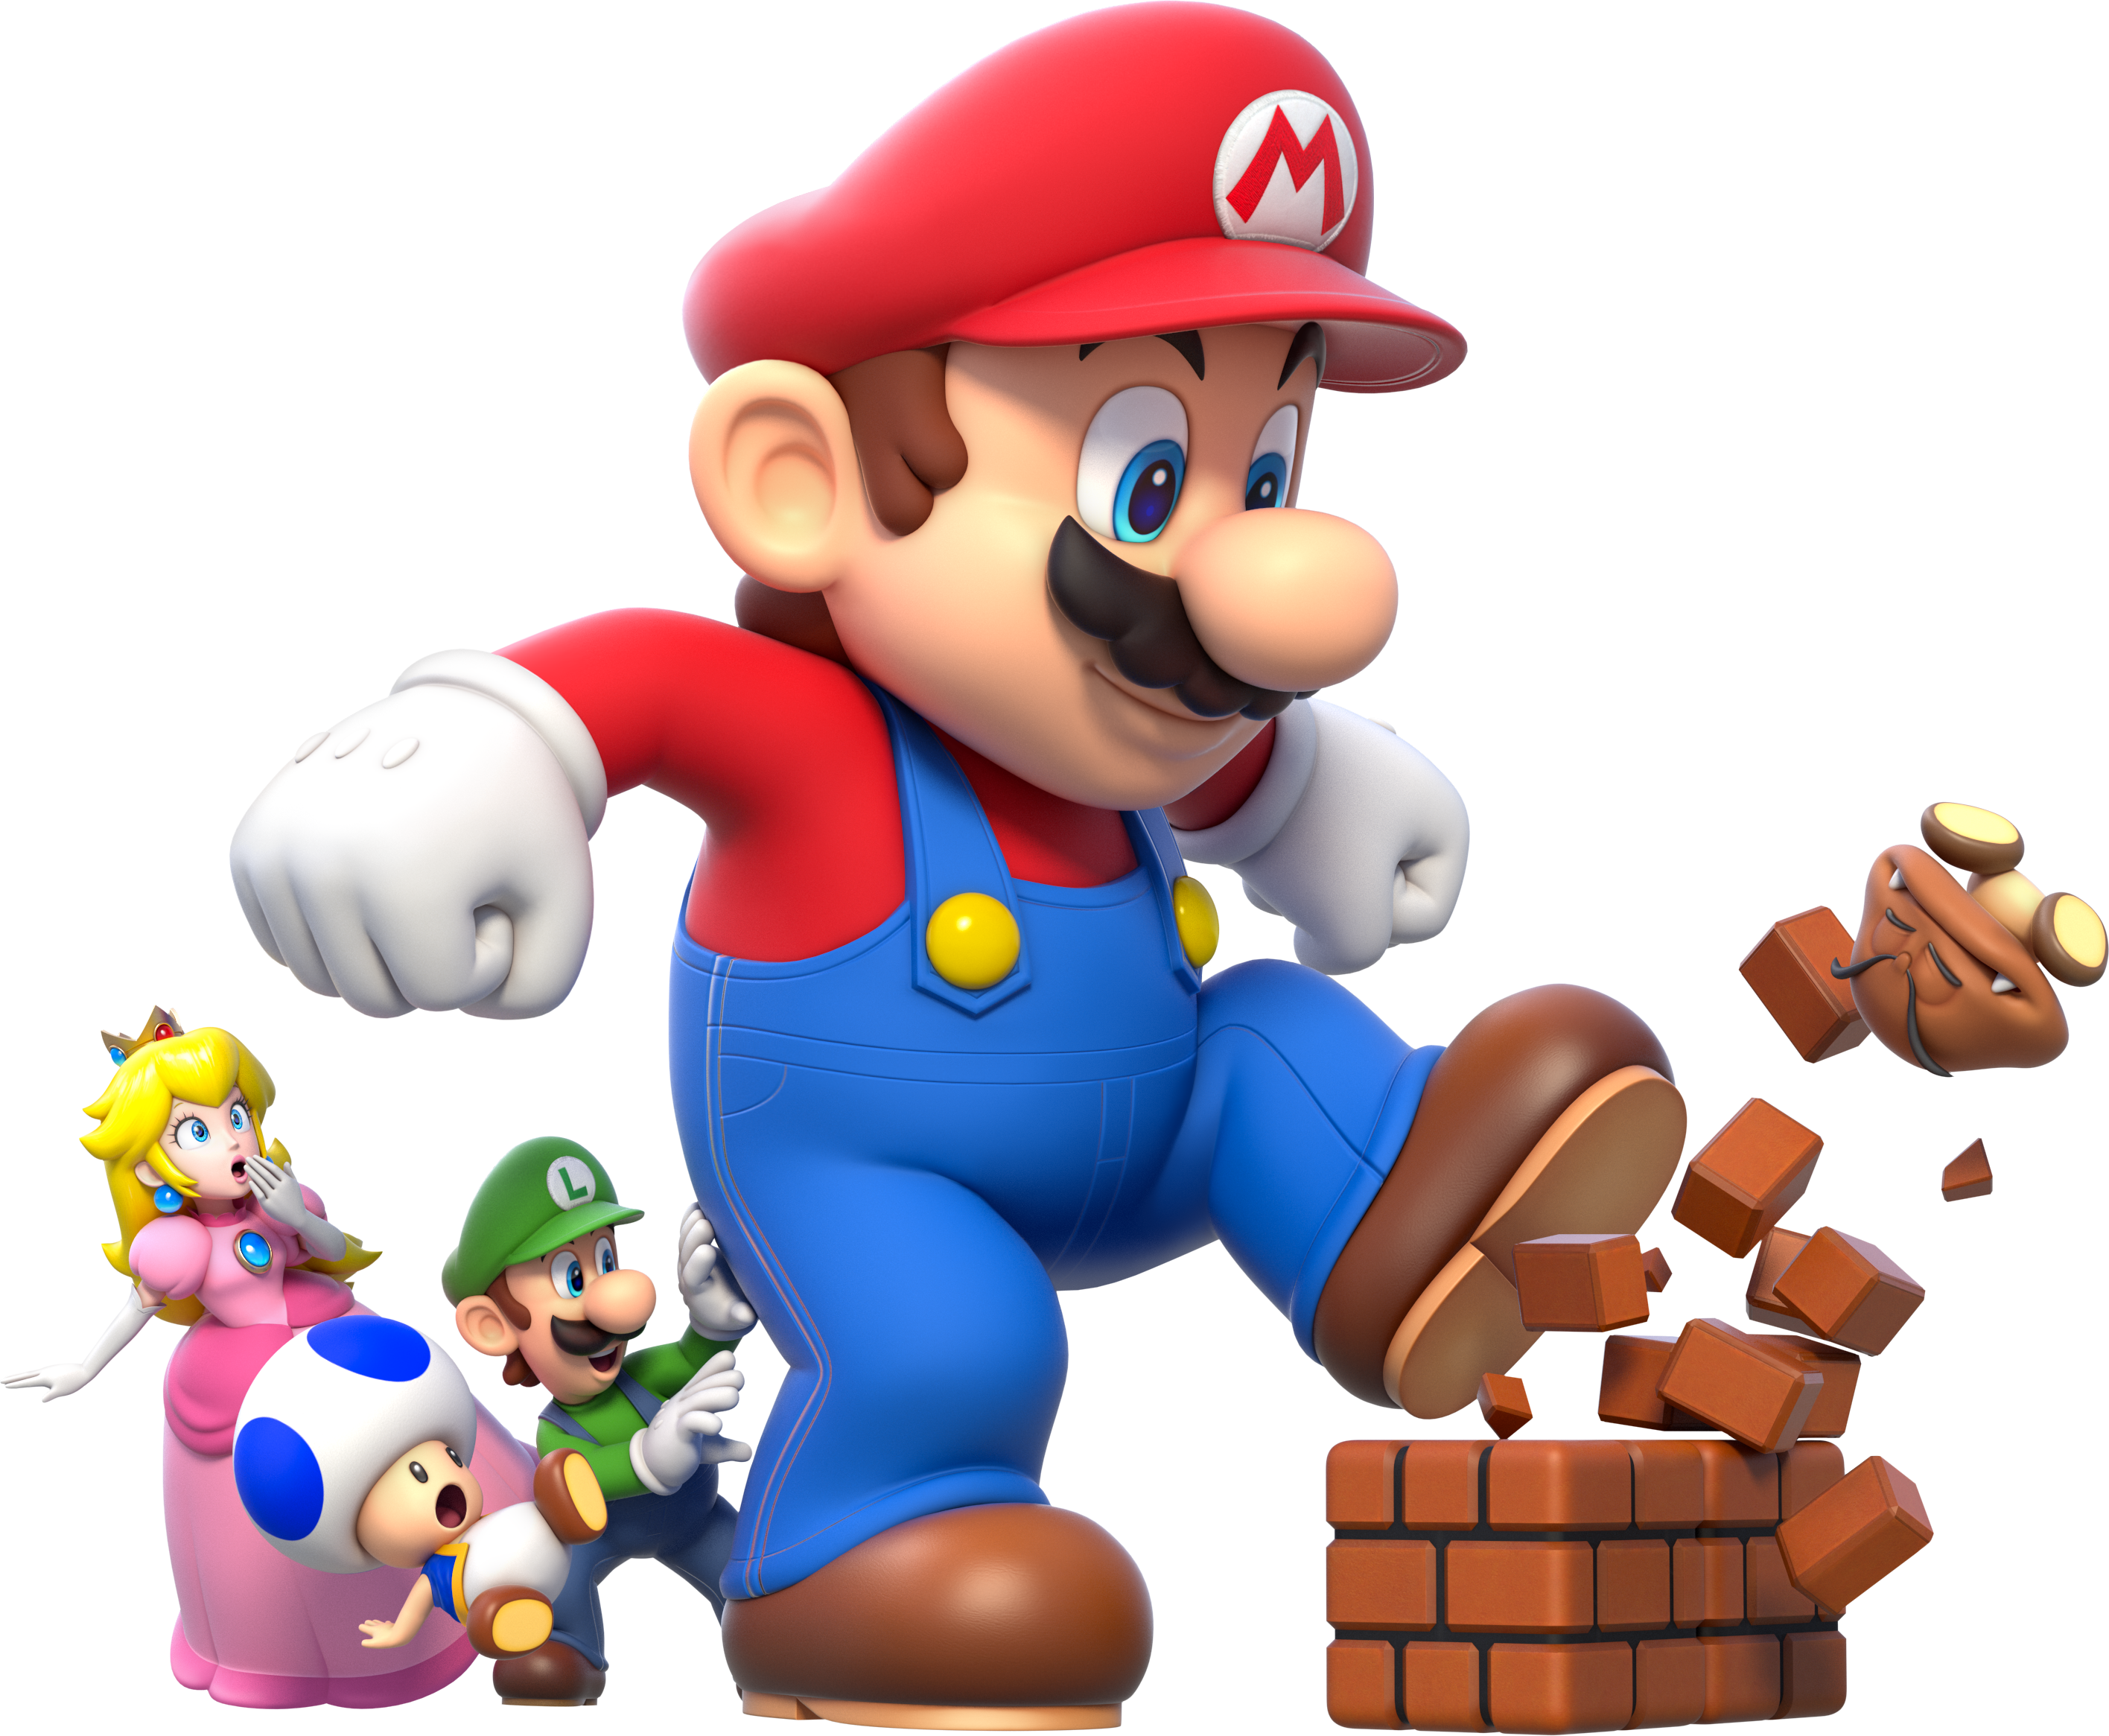 Nintendo mario png. Is all about the